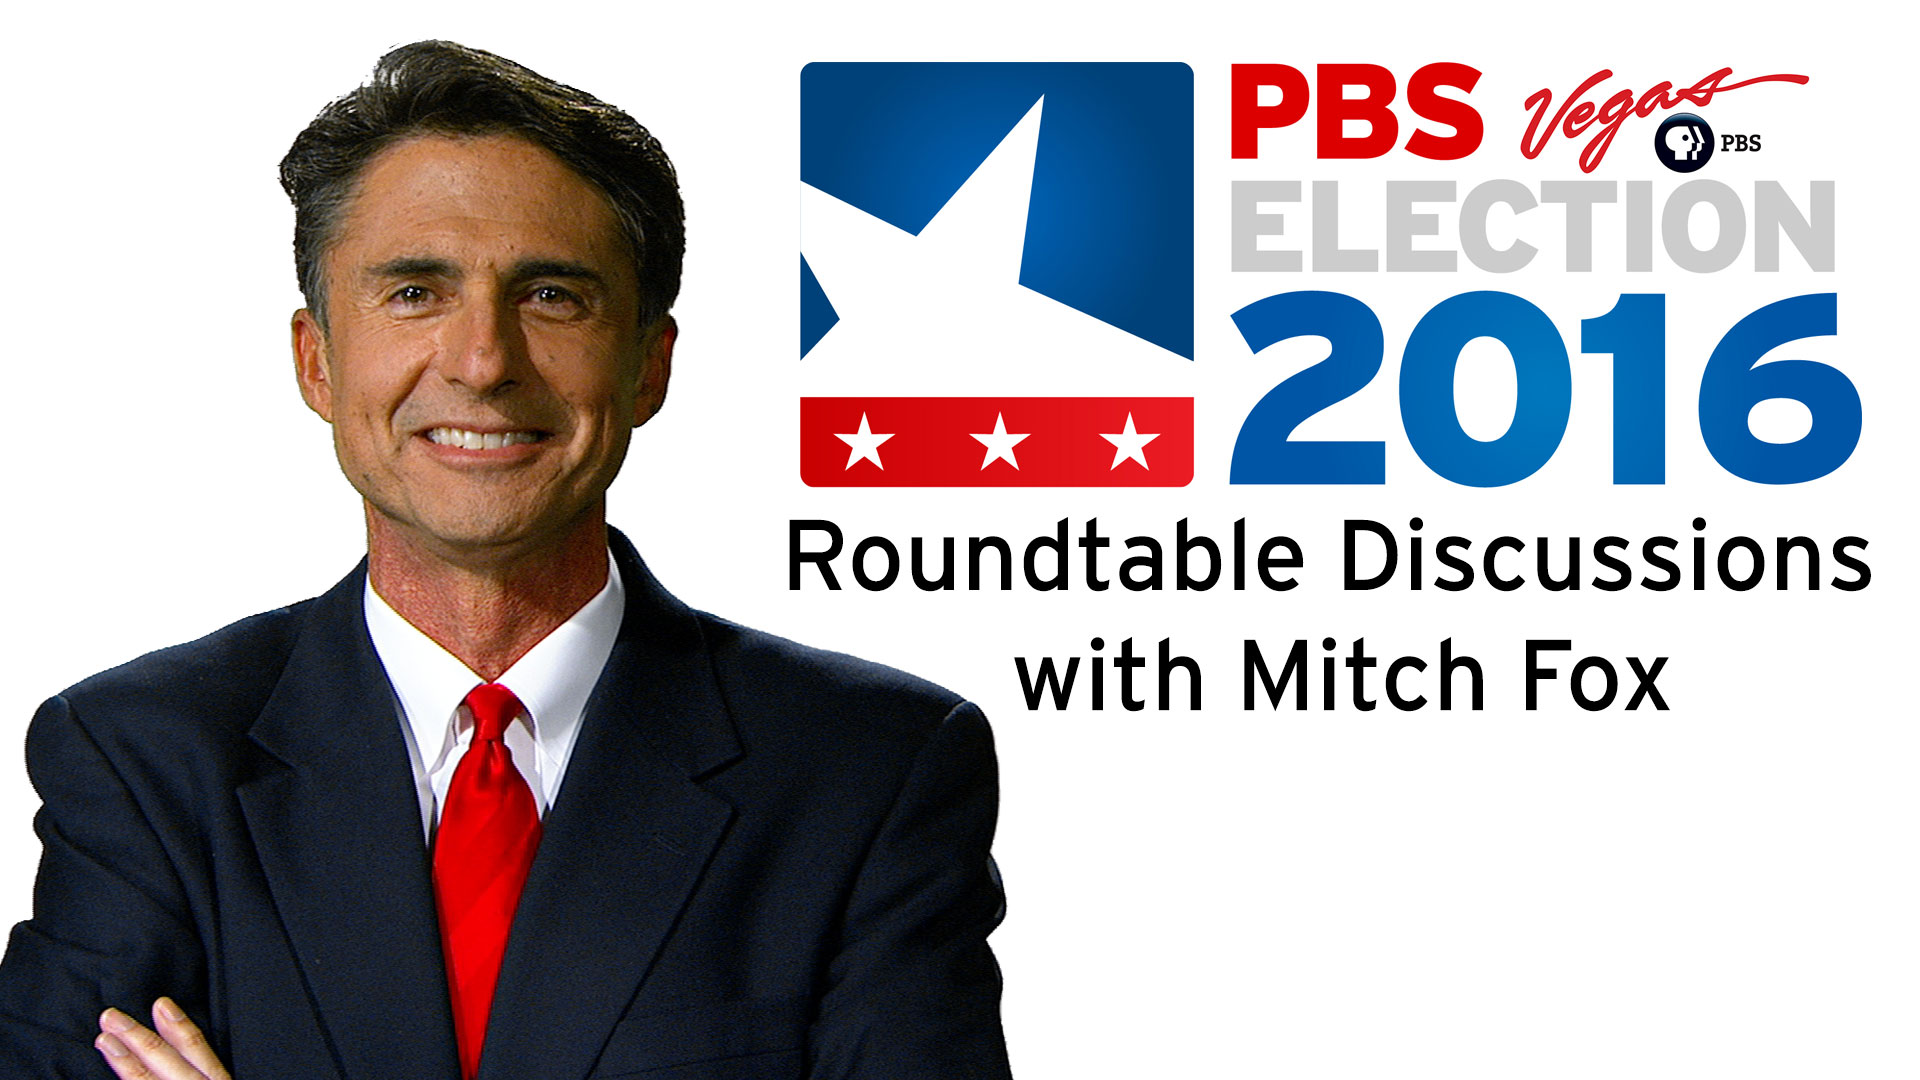 Roundtable Discussions with Mitch Fox